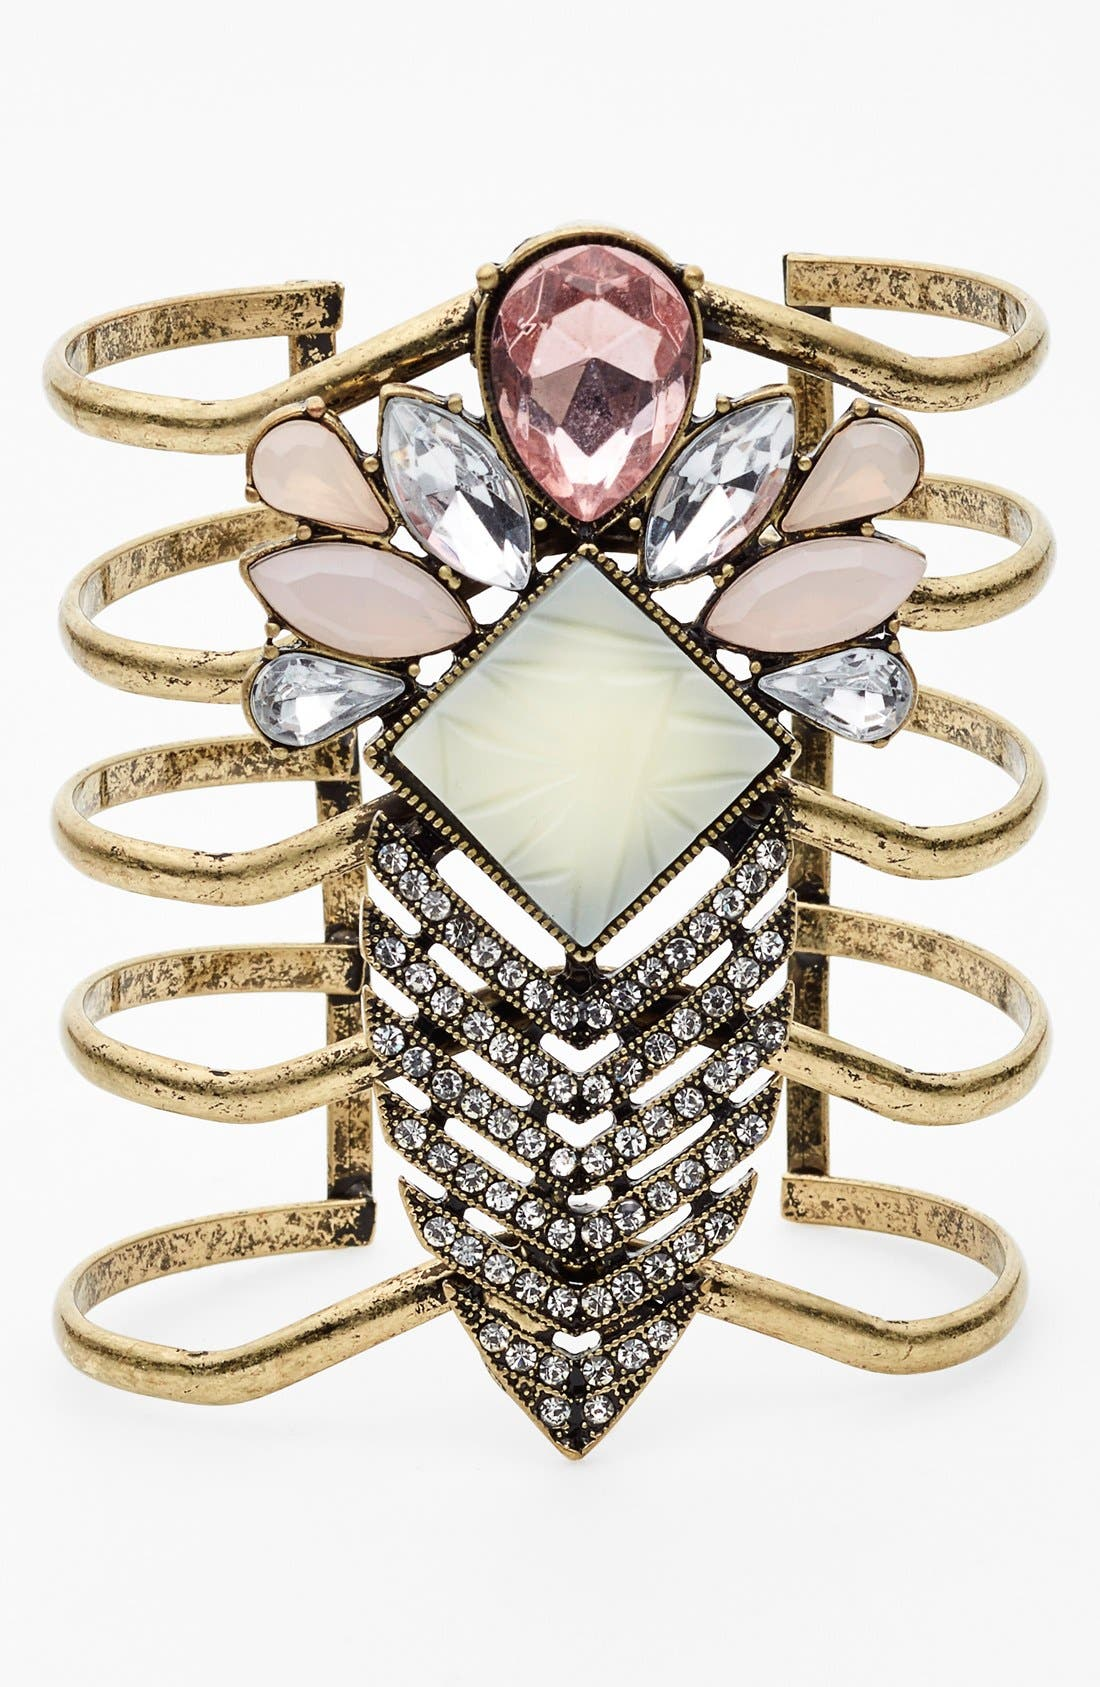 Main Image - Tildon Jewel Stone Statement Cuff